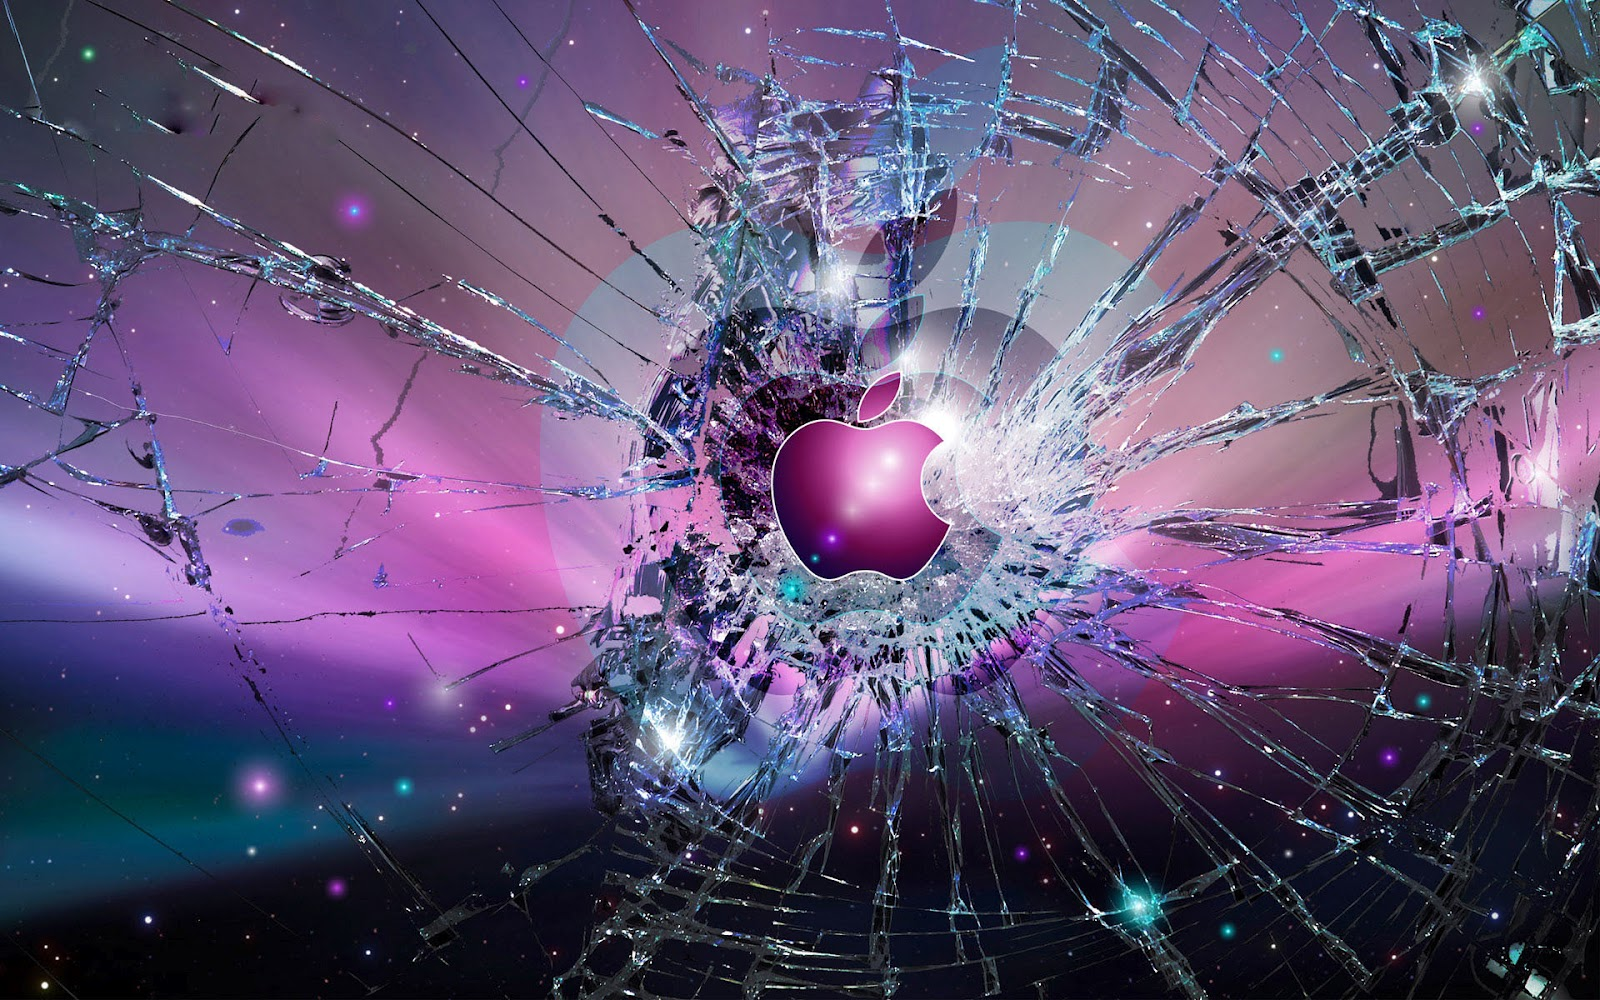 abstract 3d wallpapers hd apple mac abstract 3d wallpapers hd 1600x1000